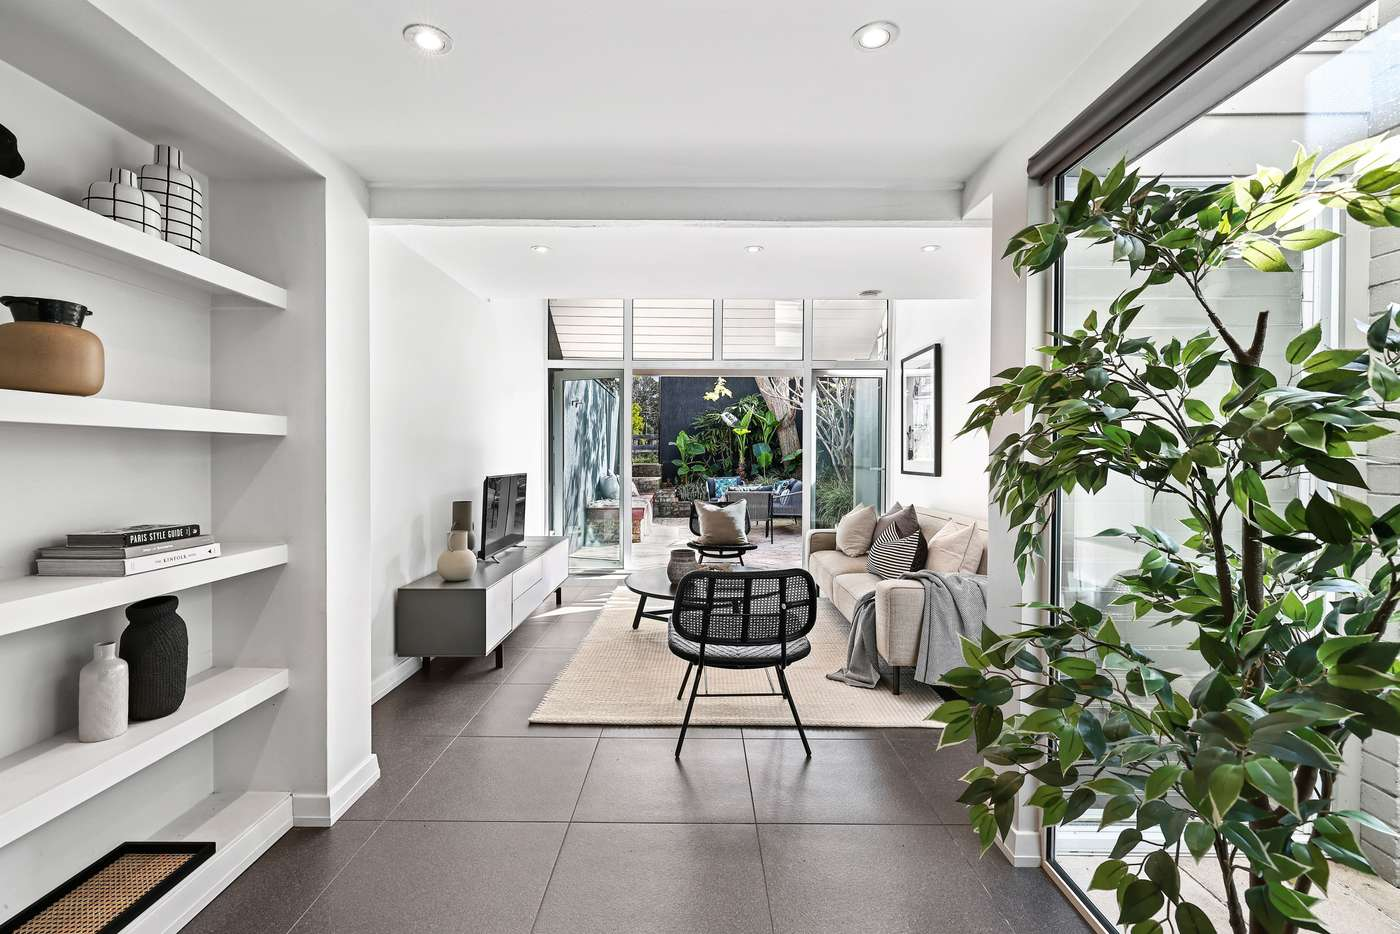 Main view of Homely house listing, 18 Parkham Street, Surry Hills NSW 2010